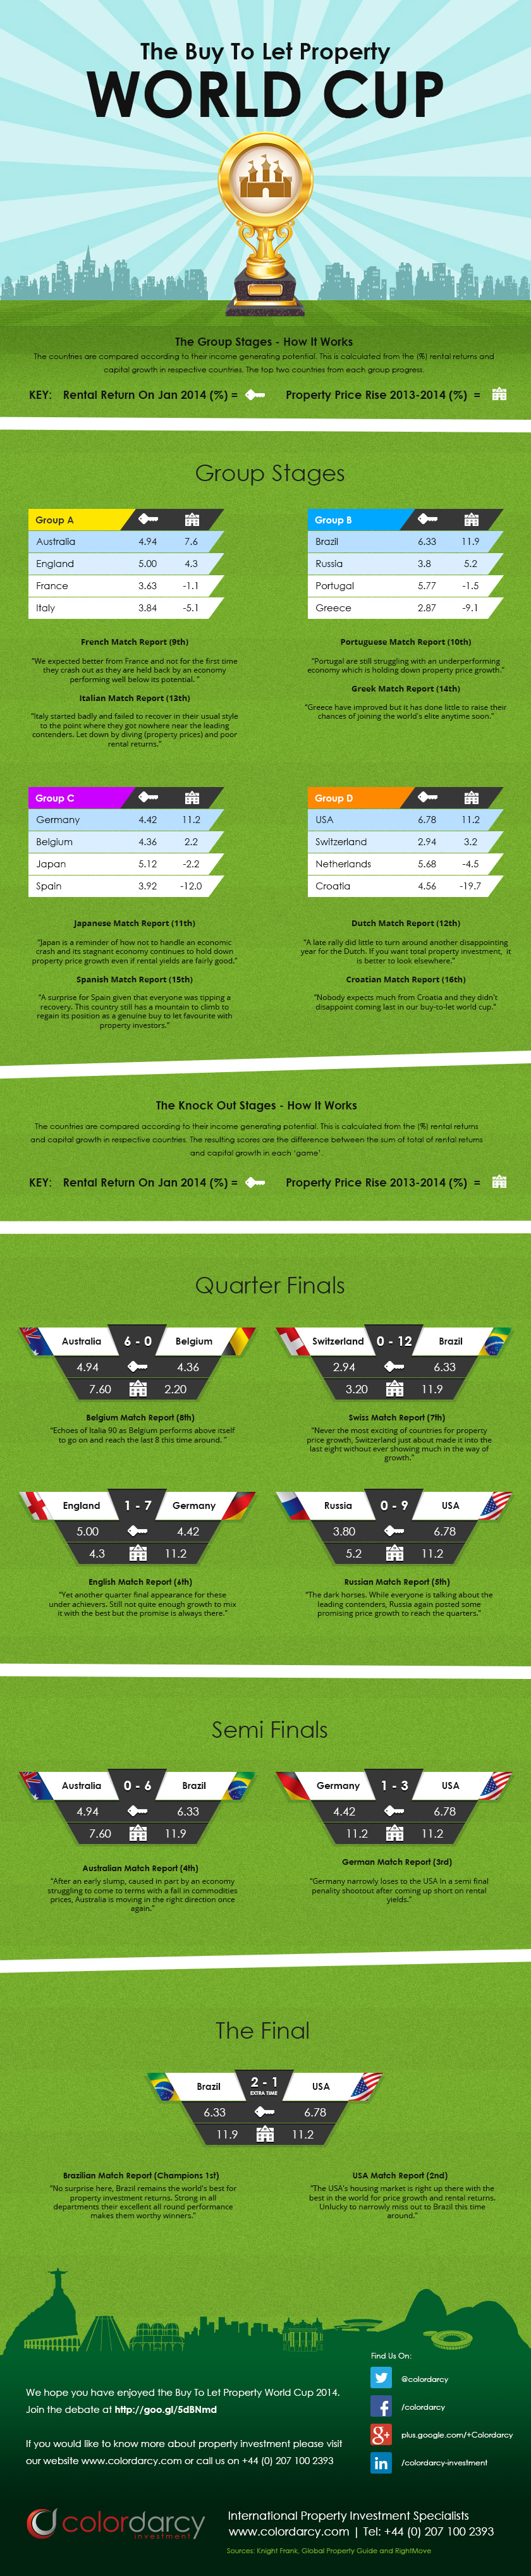 Buy-to-Let Property World Cup